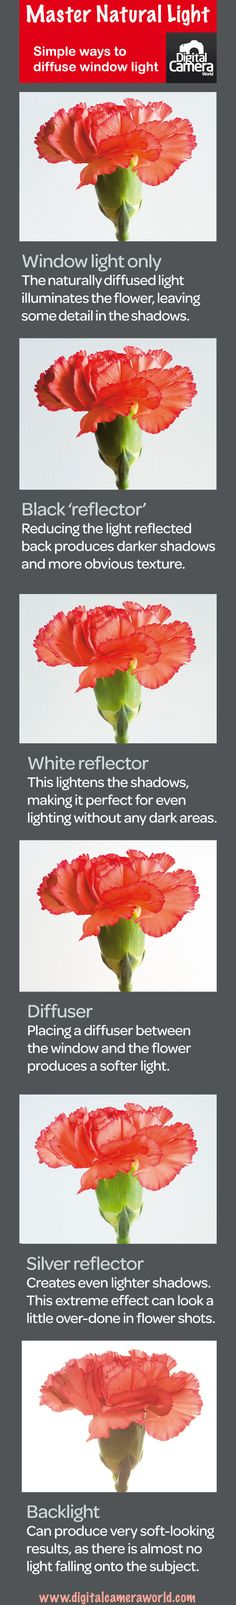 Photography cheat sheet: ways to diffuse window light for still lifes